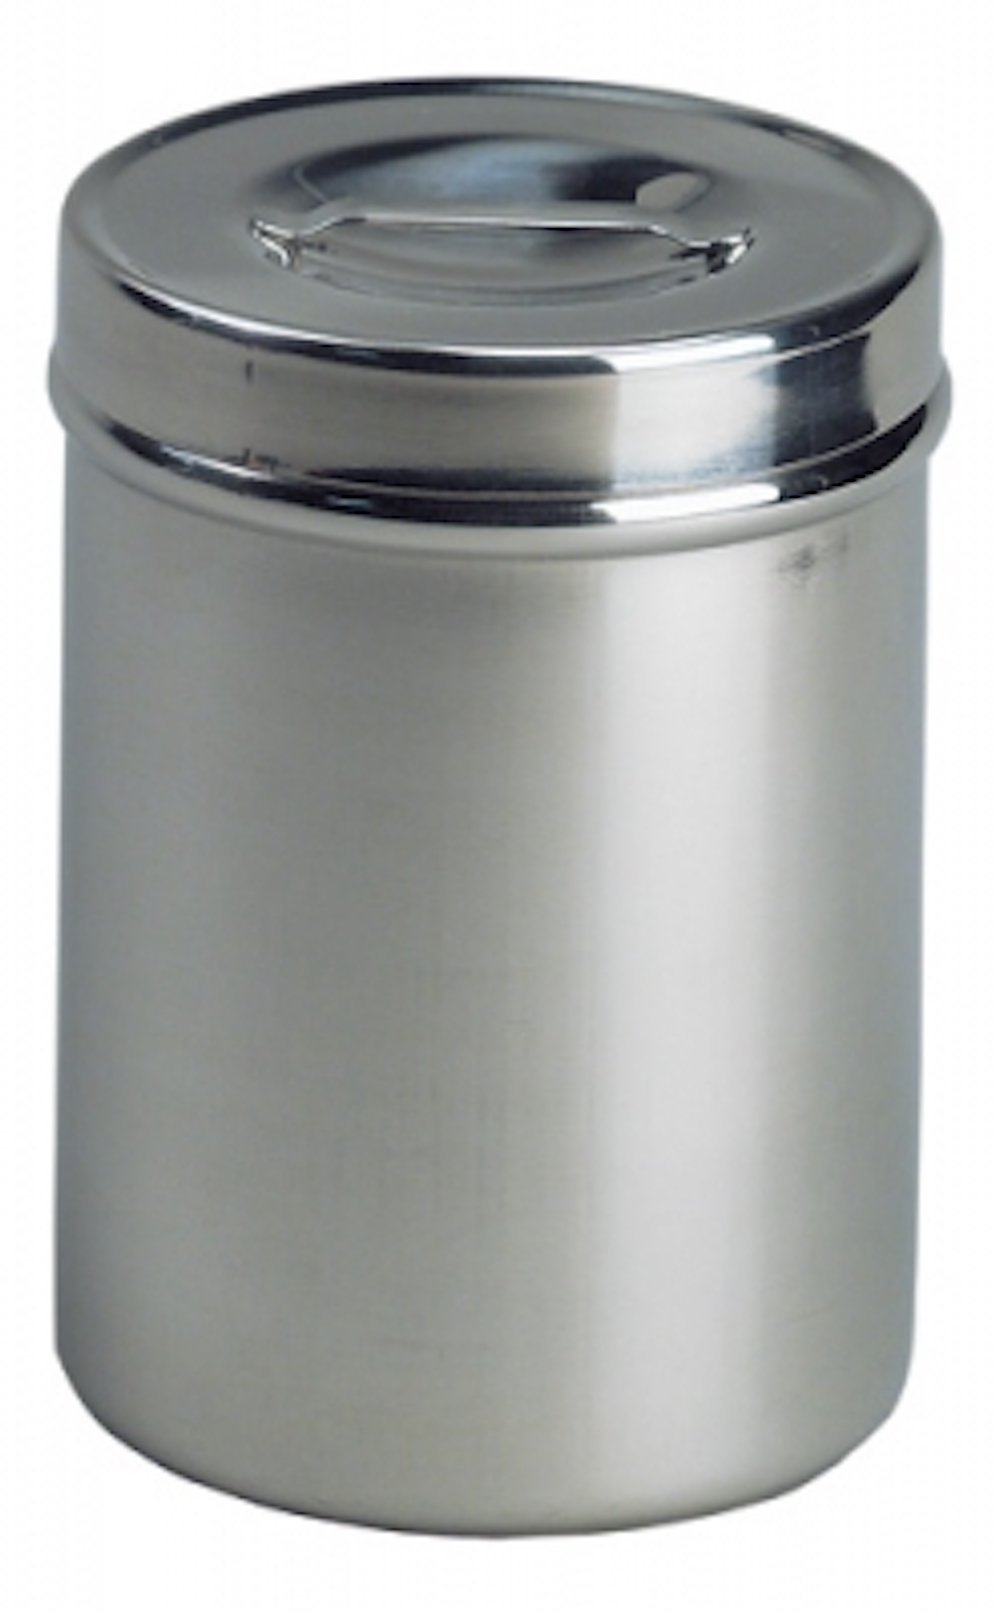 Pivit Antibacterial S.S Medical Dressing Storage Sundry Jar | 0.5 Qt | 4 1/8'' x 2 ½'' | Highest Grade (18/8) German Stainless Steel | Prevents Bacteria Growth | Slip Over Lid with Recessed Handle